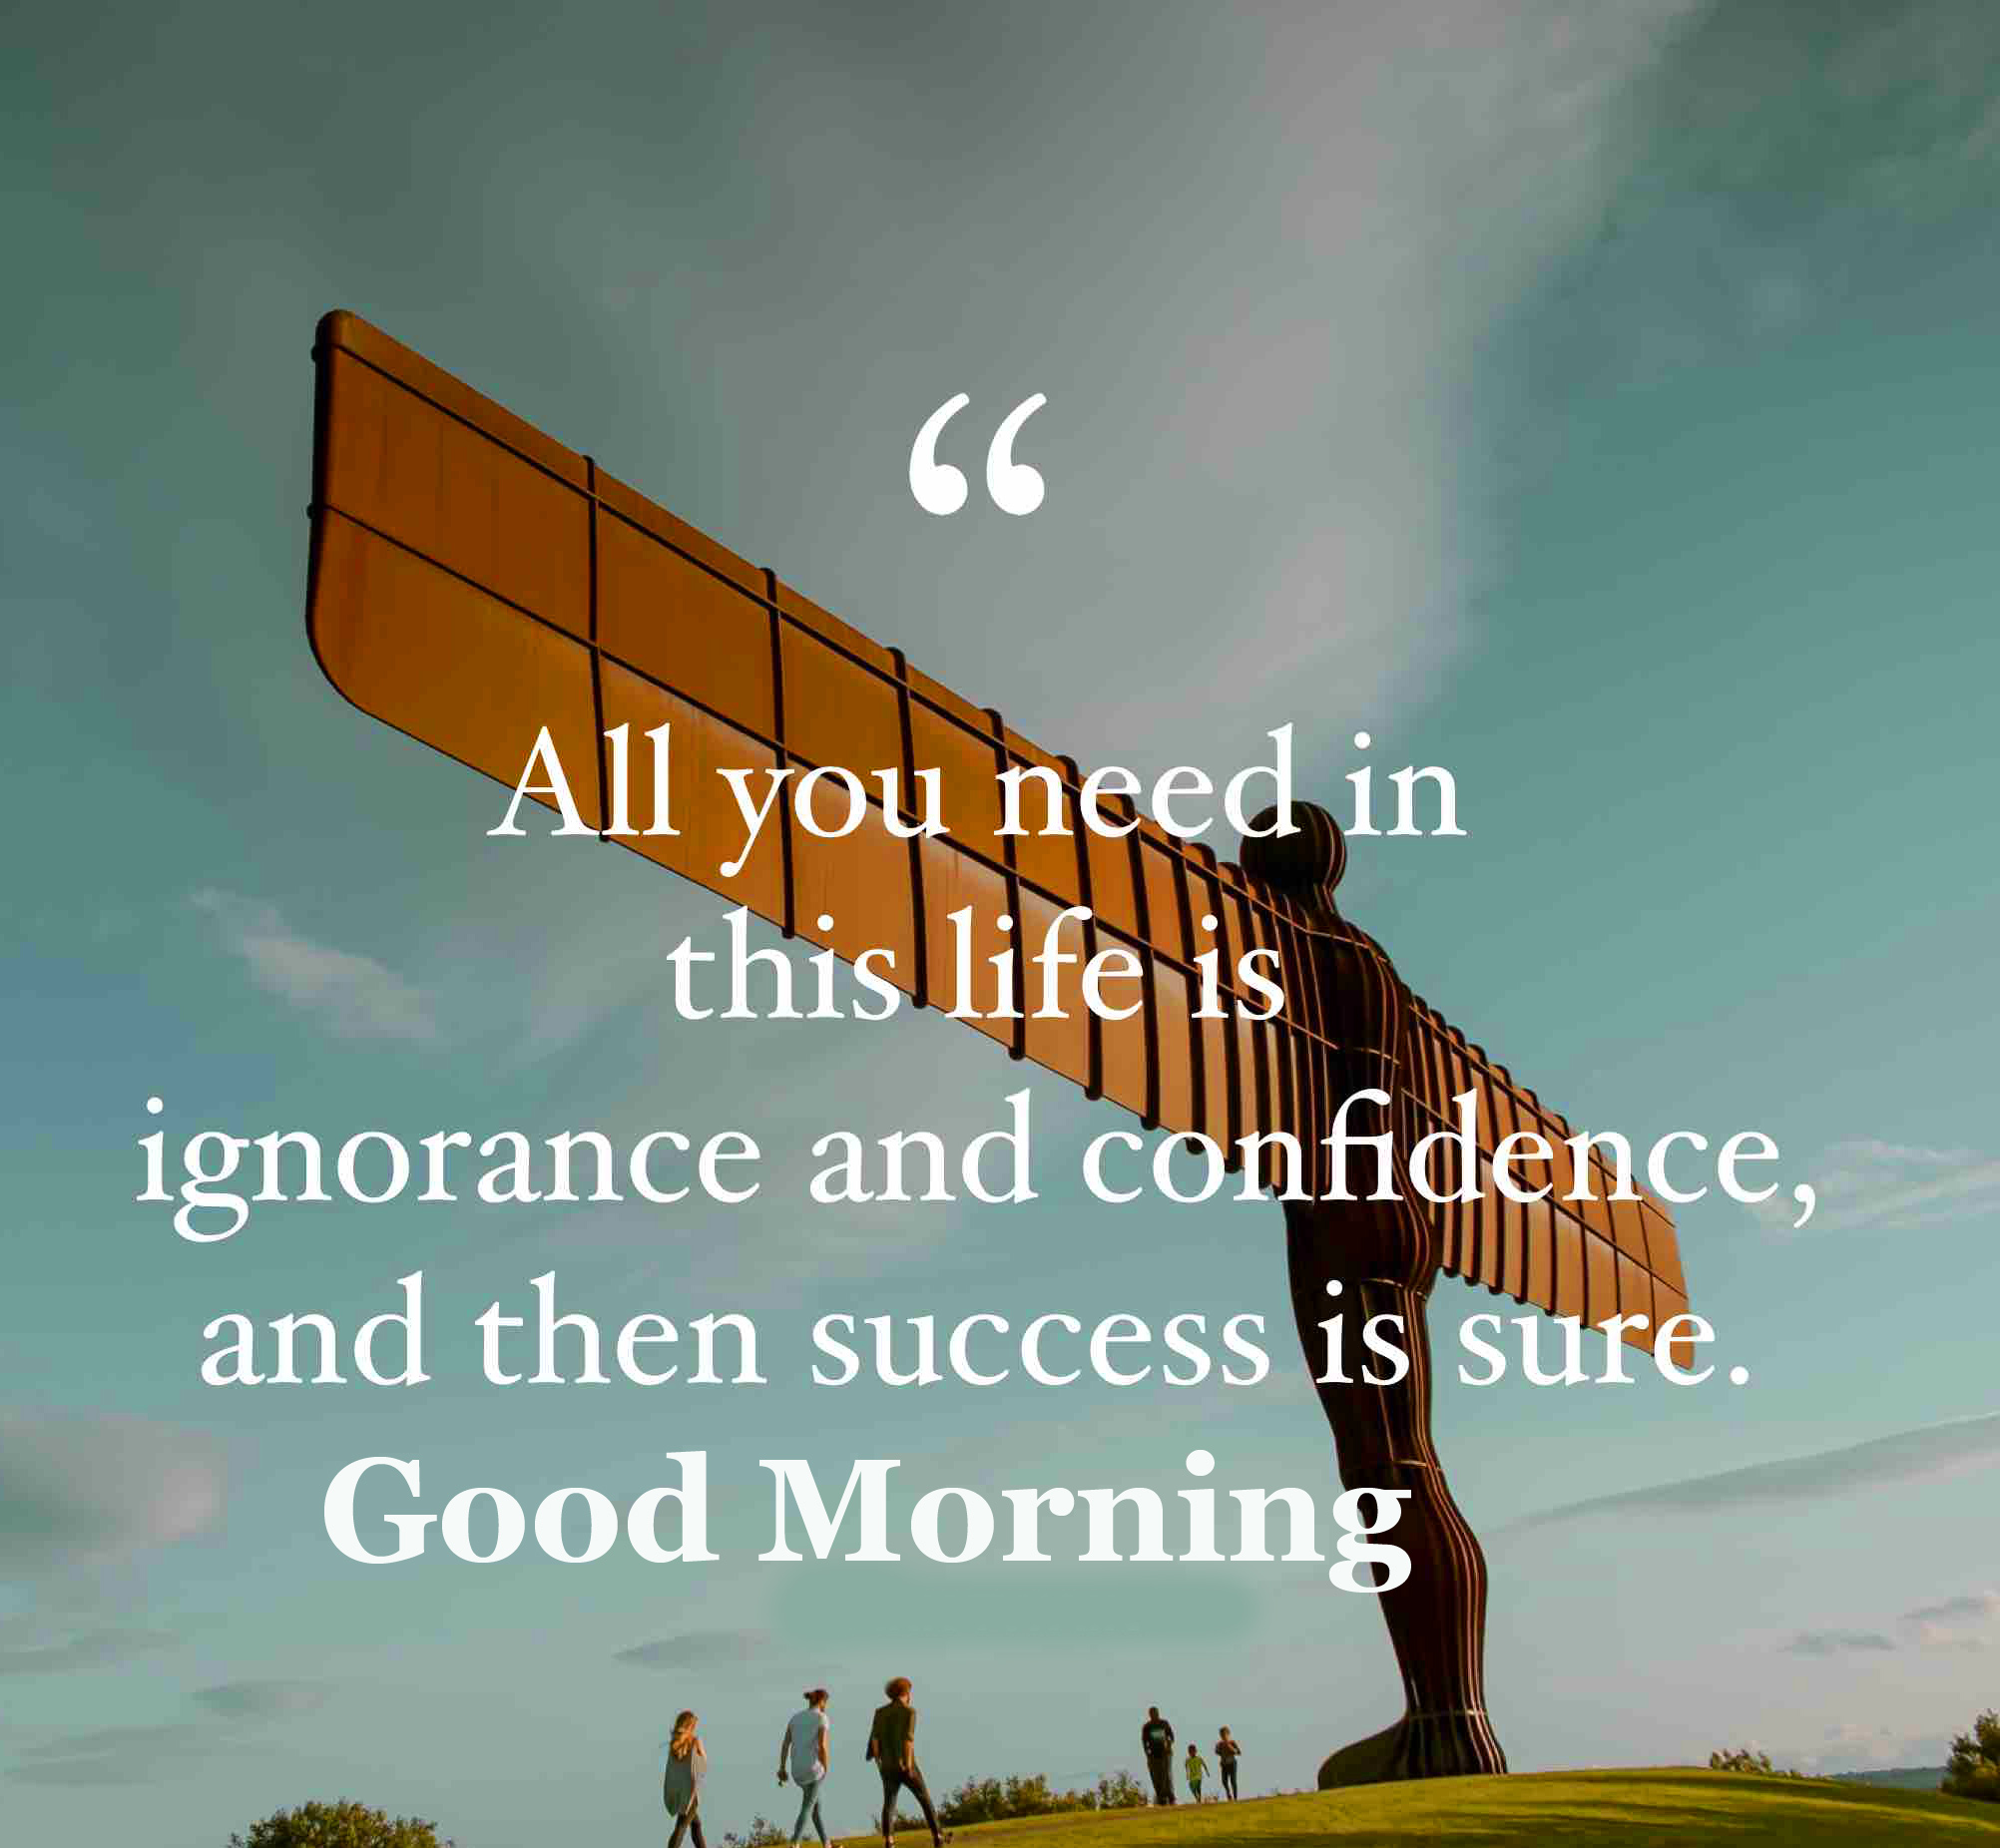 Success Thought Good Morning Image